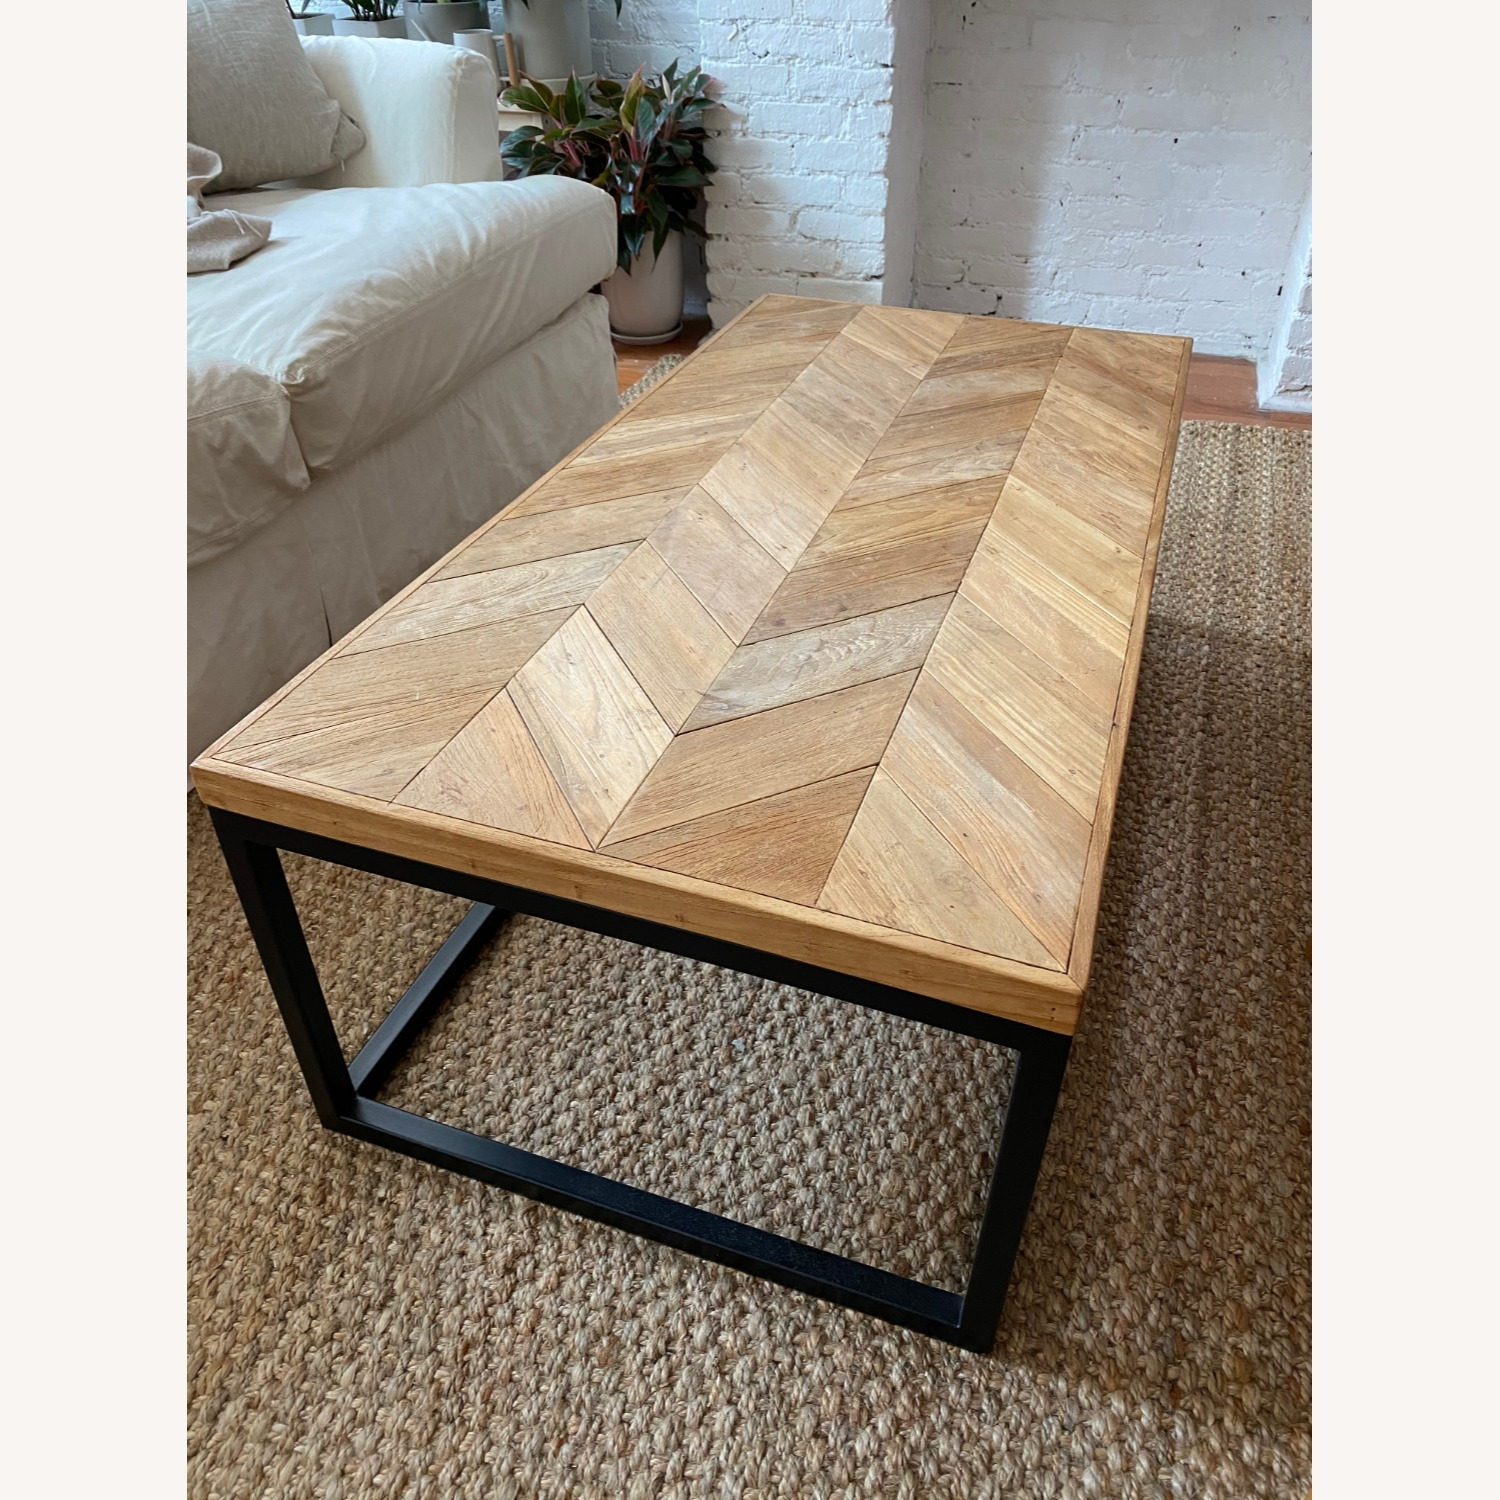 Crate & Barrel Mid Century Modern Coffee Table - image-1